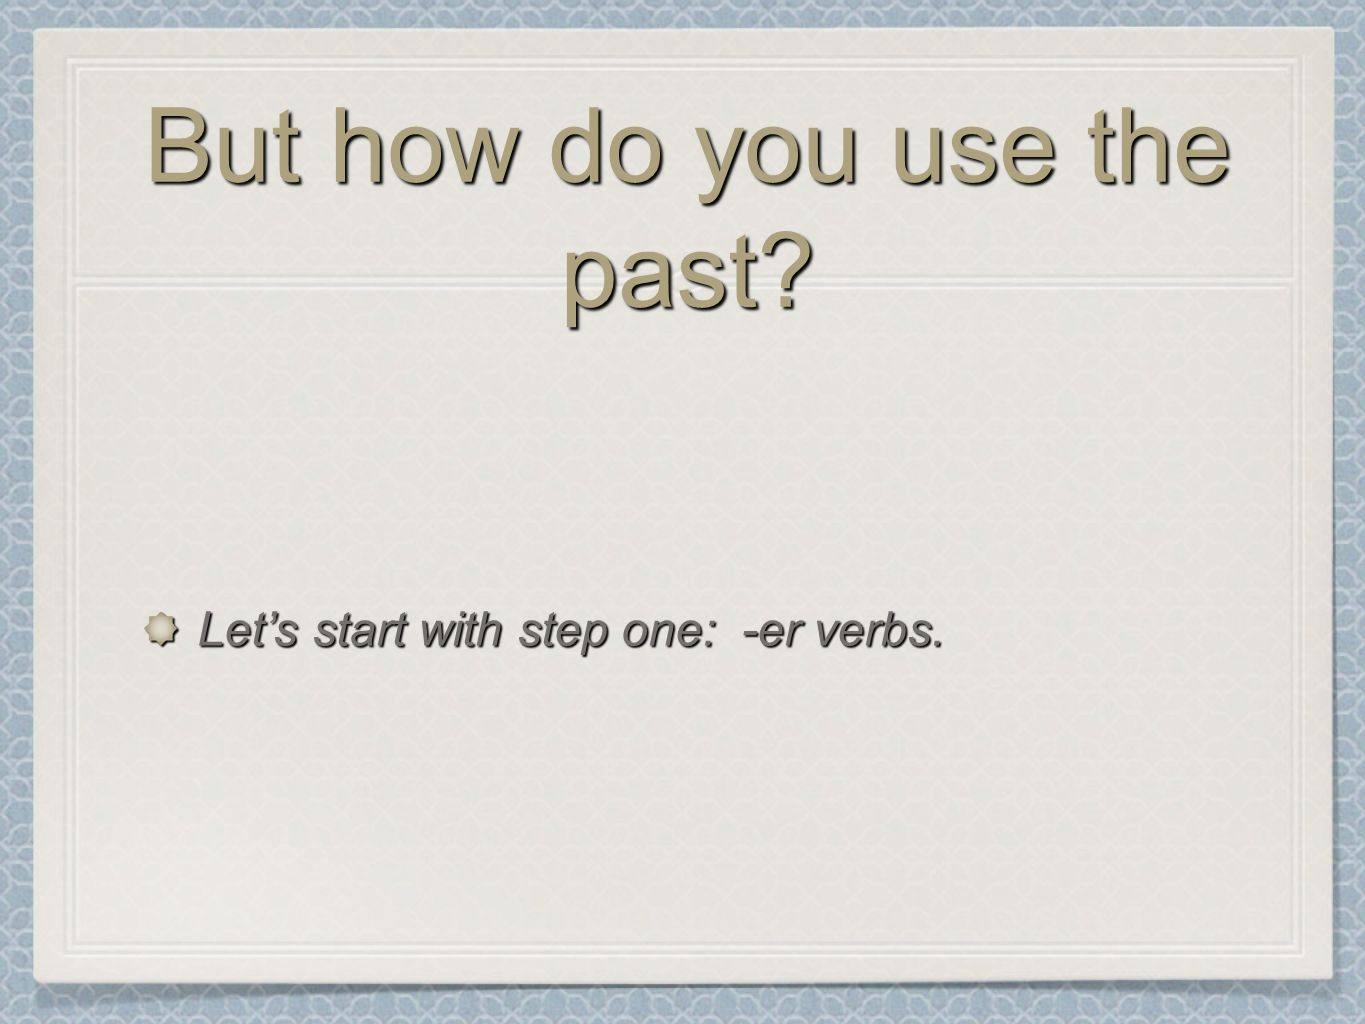 But how do you use the past Lets start with step one: -er verbs.